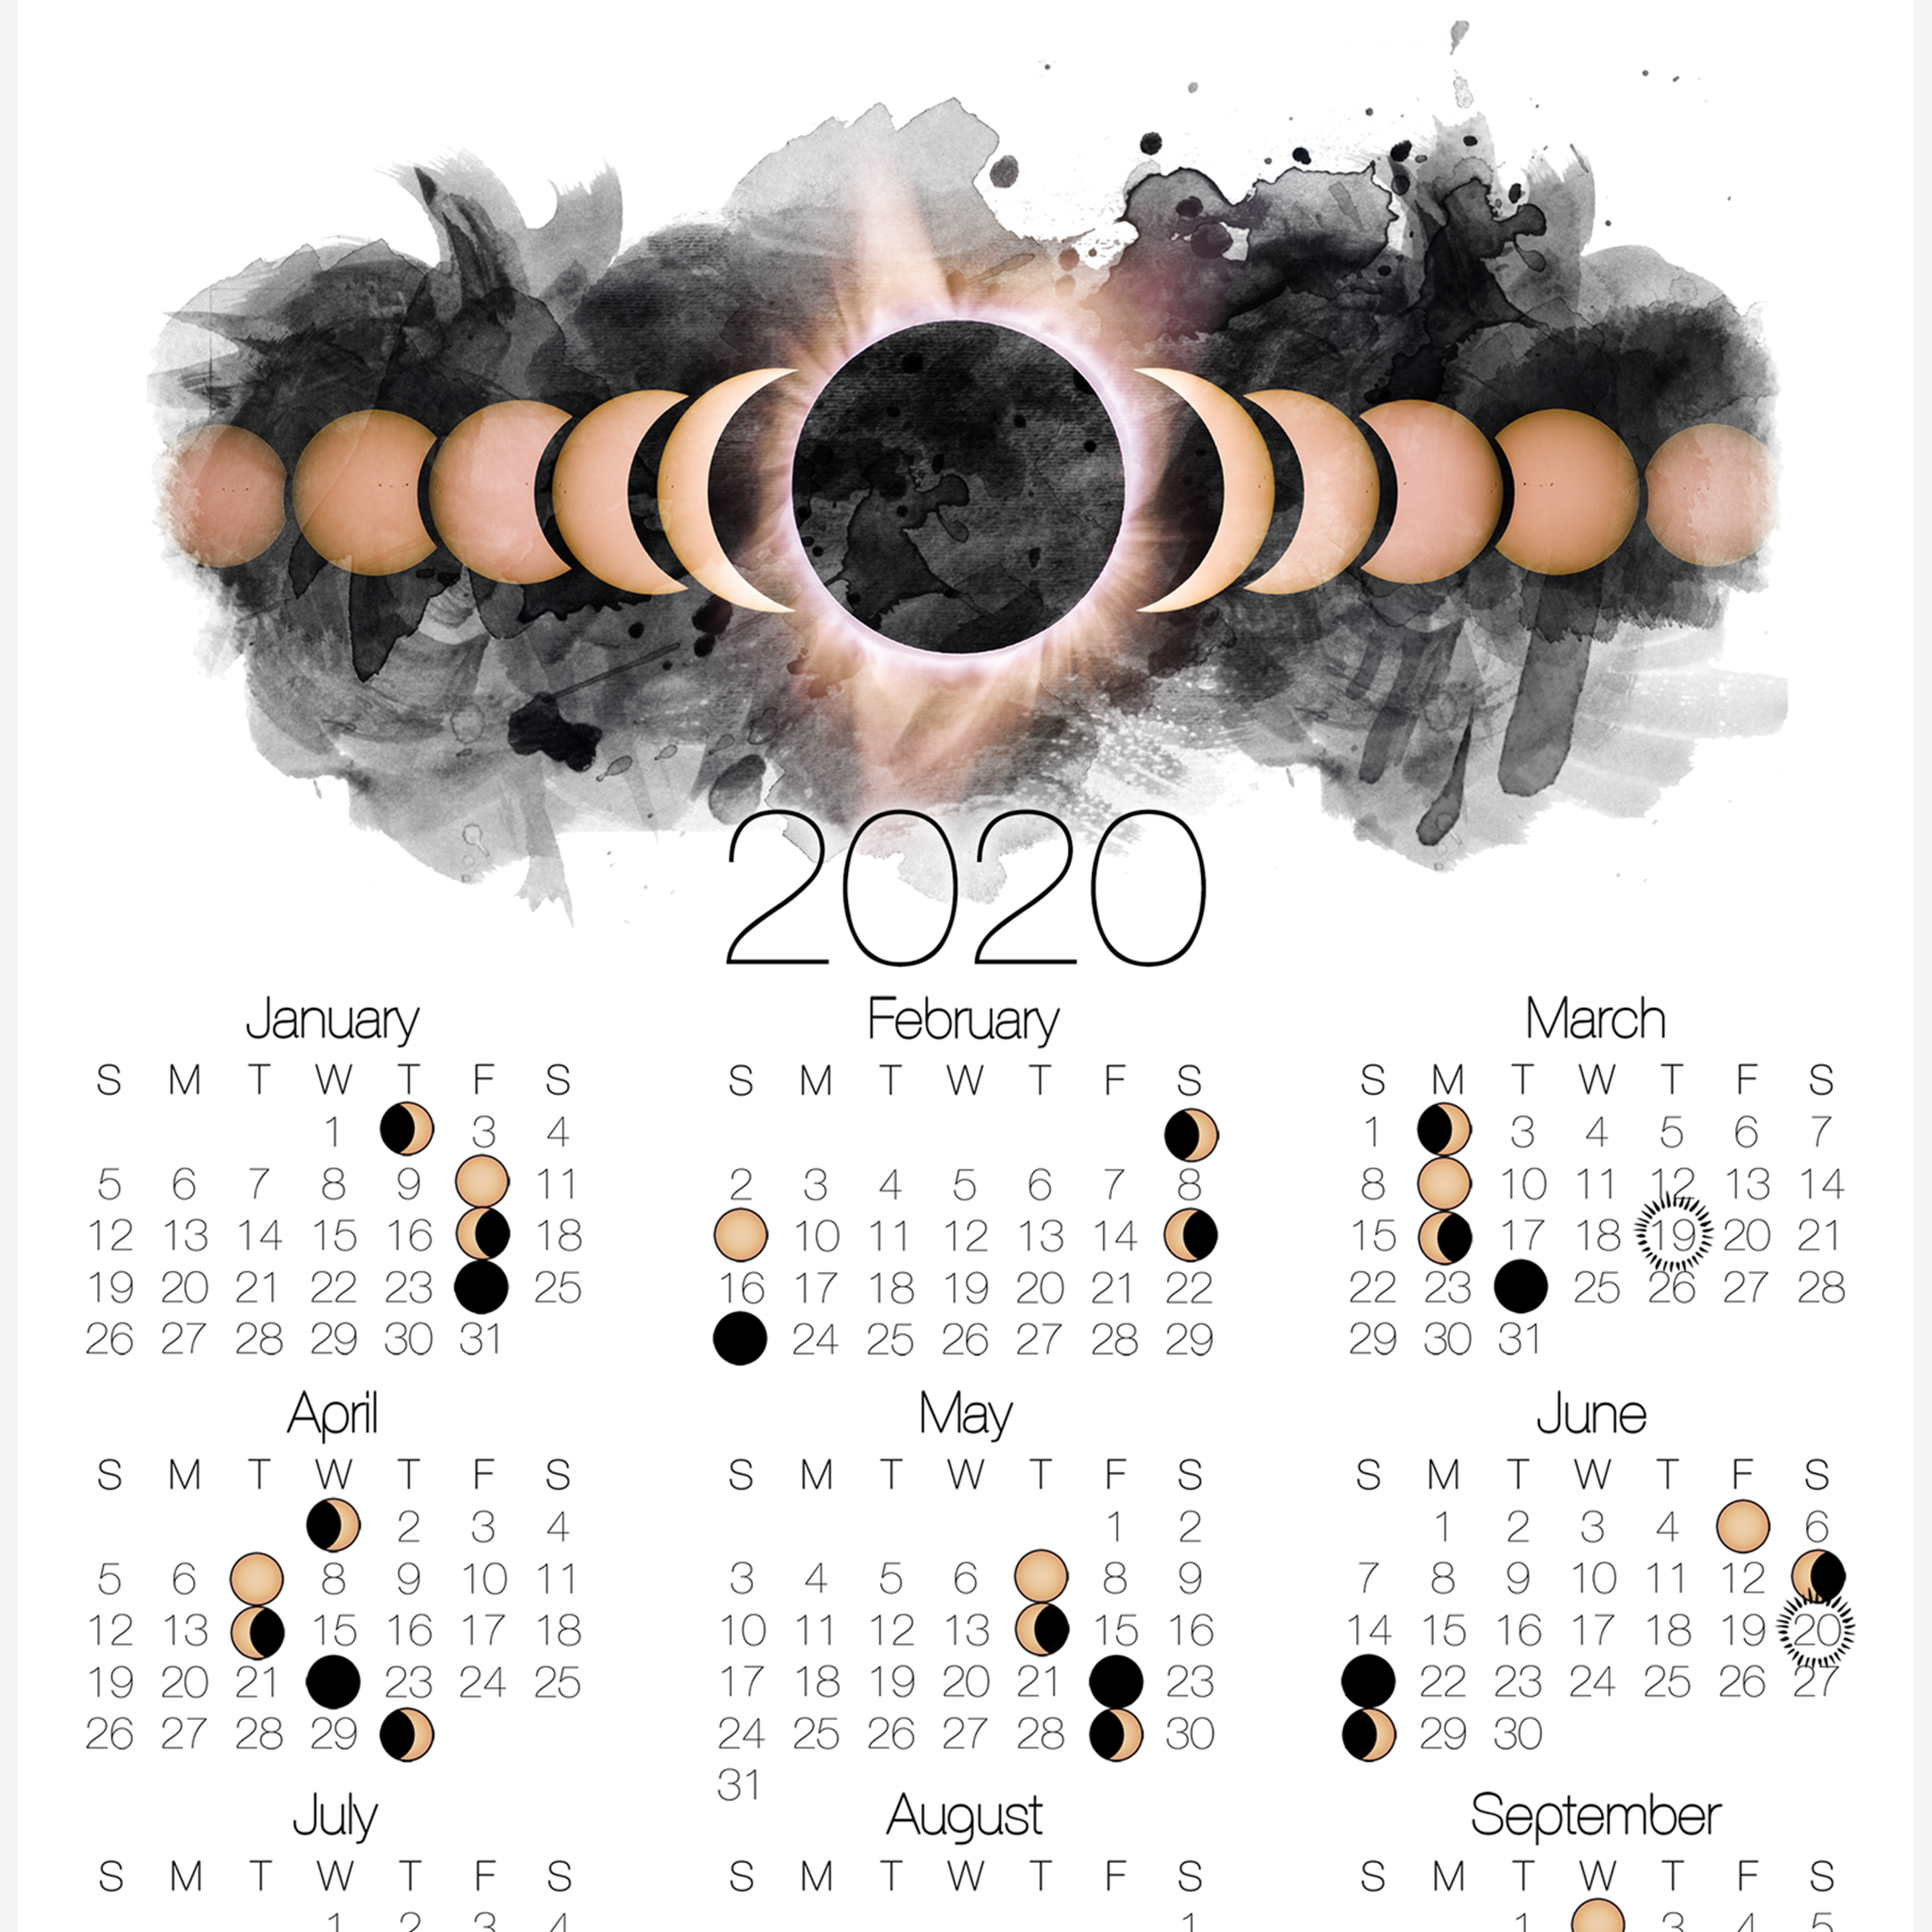 2020 Moon Phase Calendar Lunar Calendar With Solar Eclipse